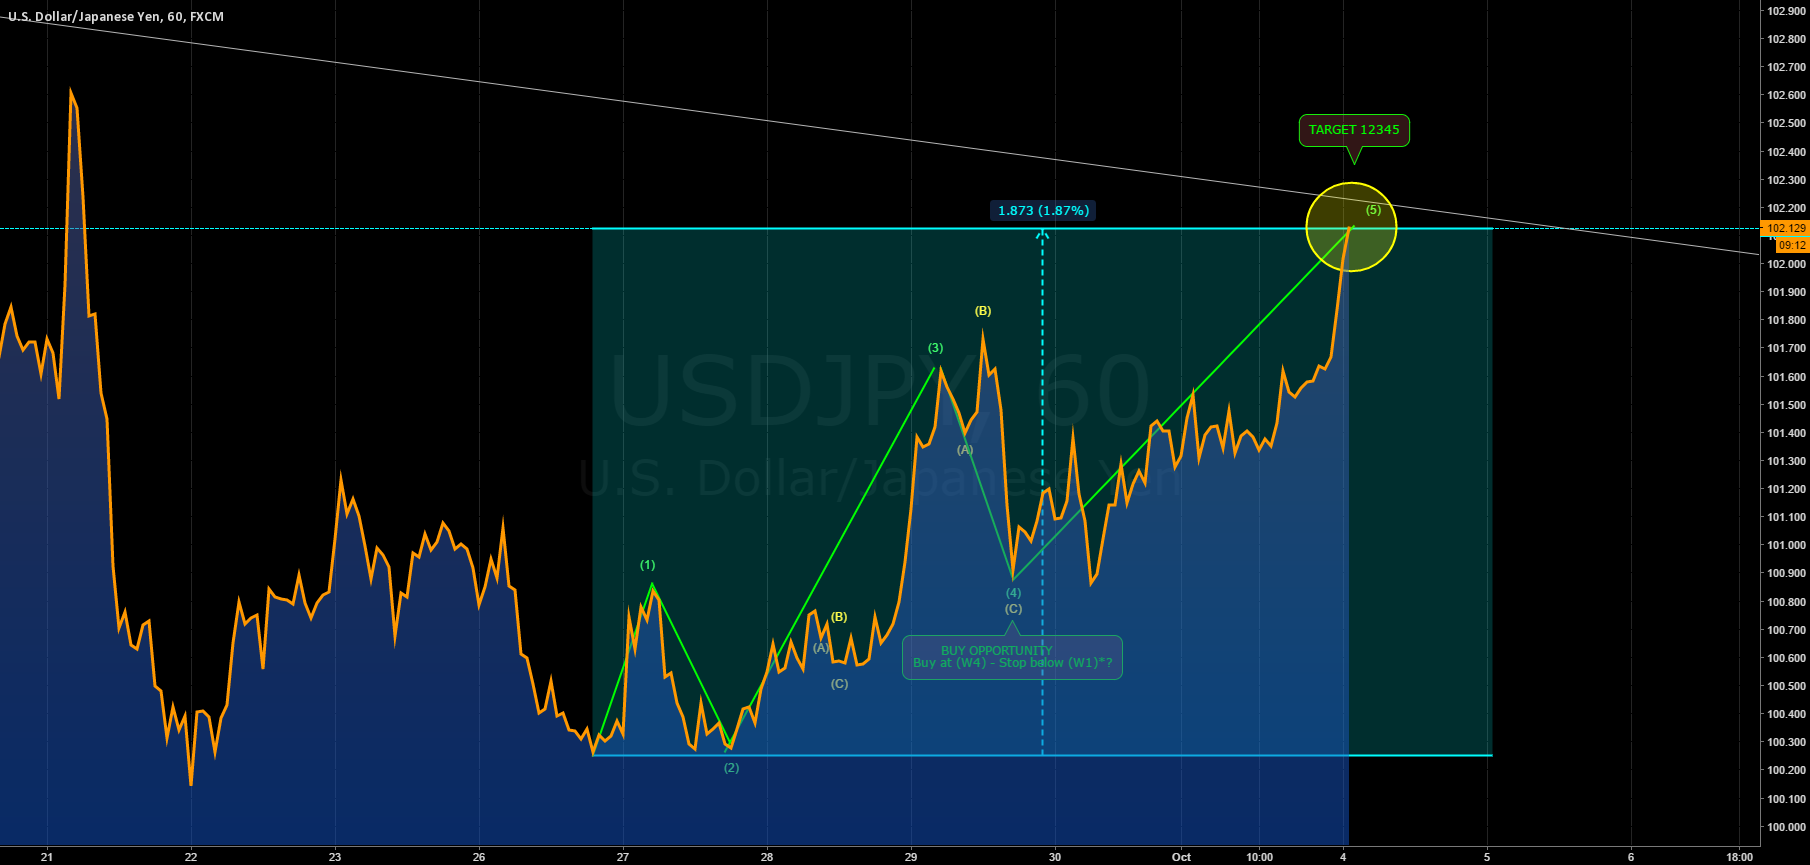 USDJPY: 12345 (bullish) COMPLETED!